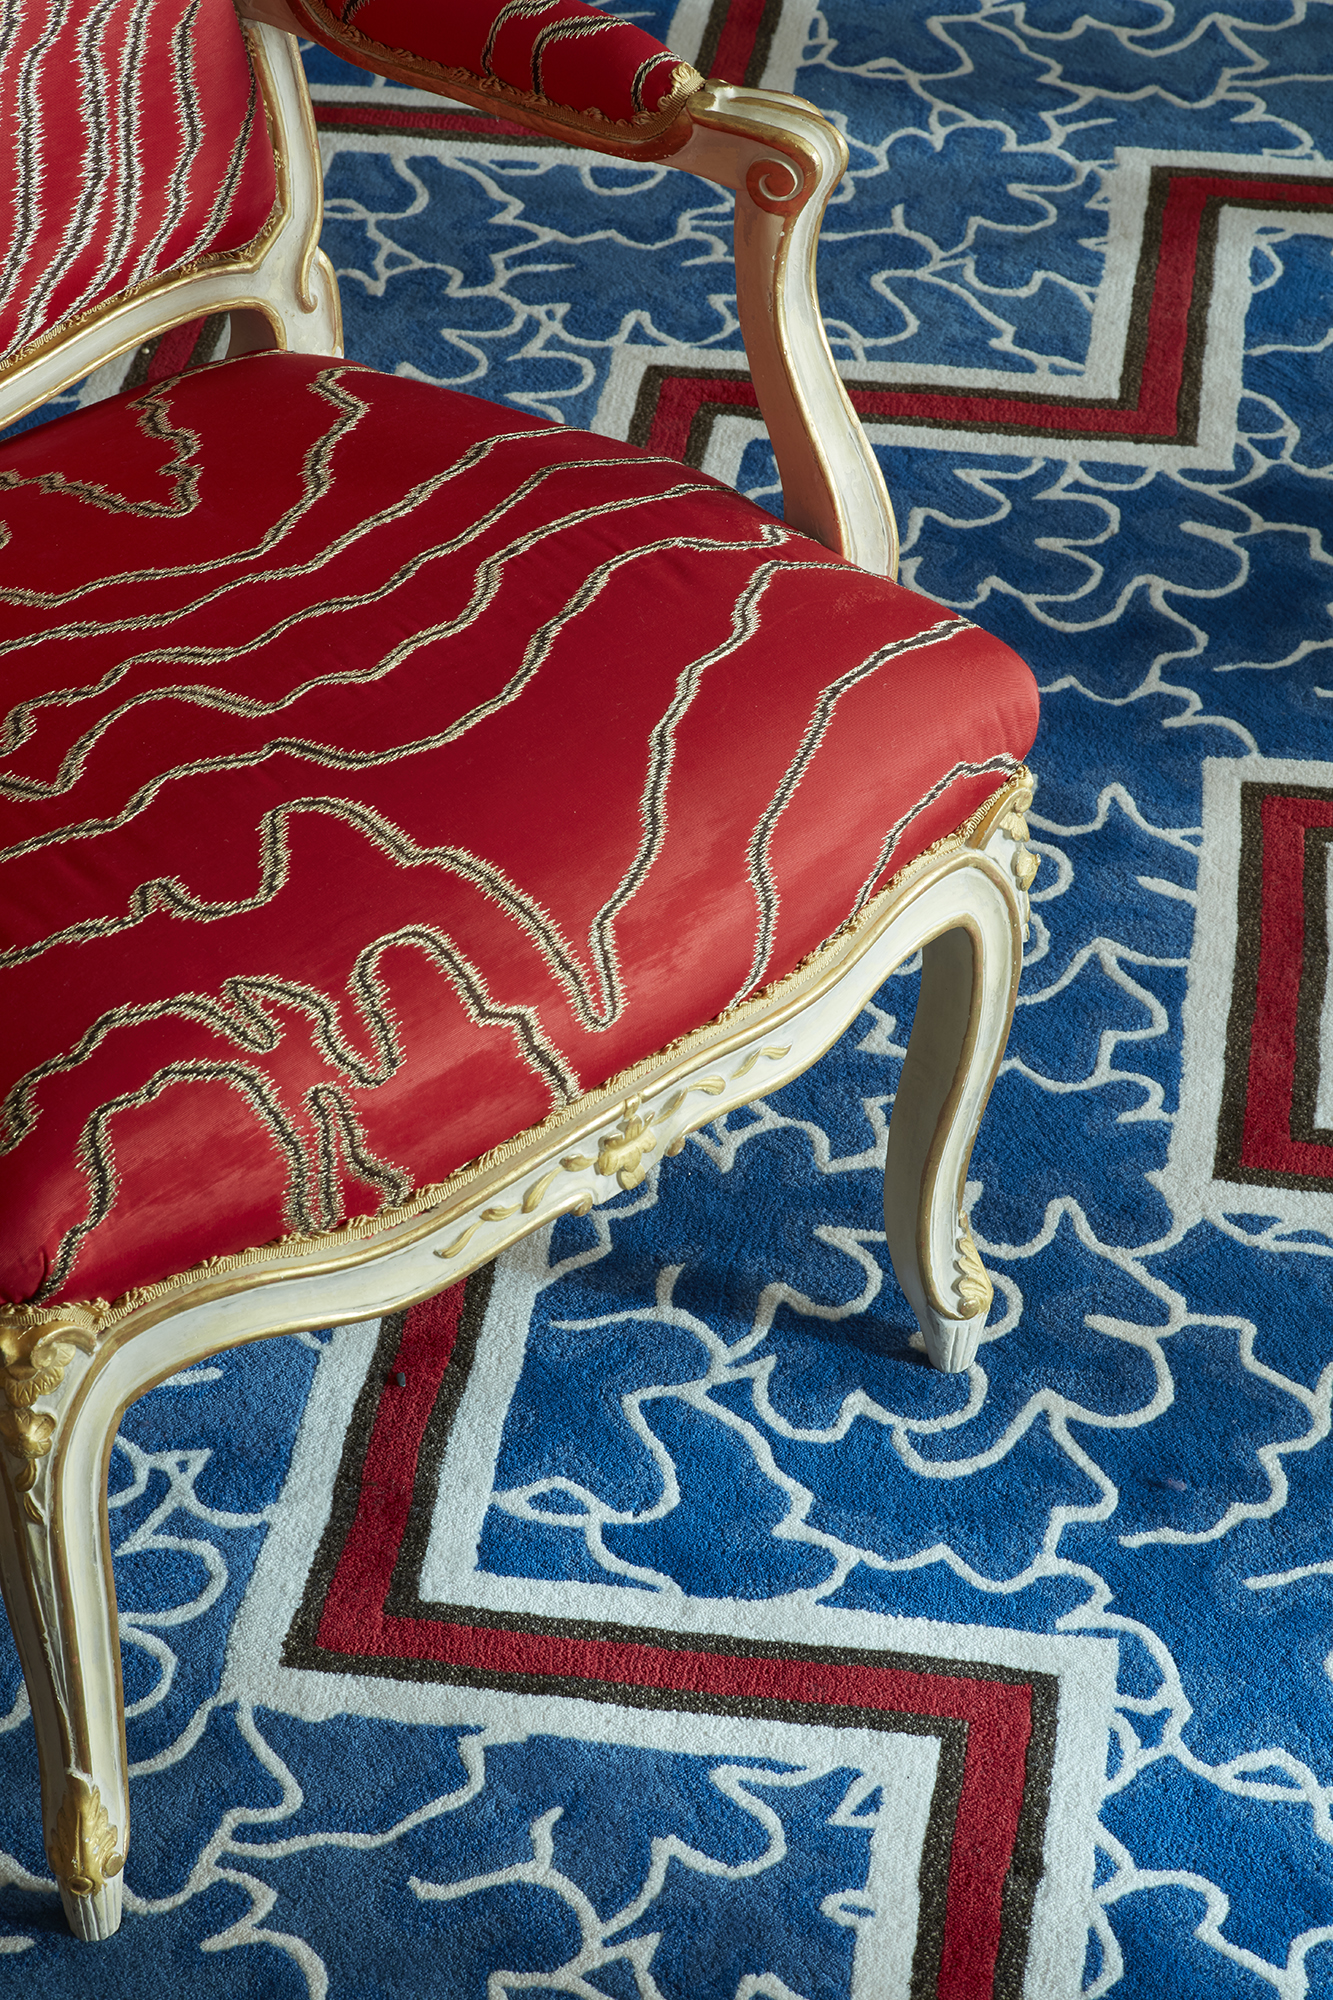 de Gournay hand embroidered 'Faux Bois' upholstery from Salon Privé by Alessandra Branca. Photo credit: Simon Upton